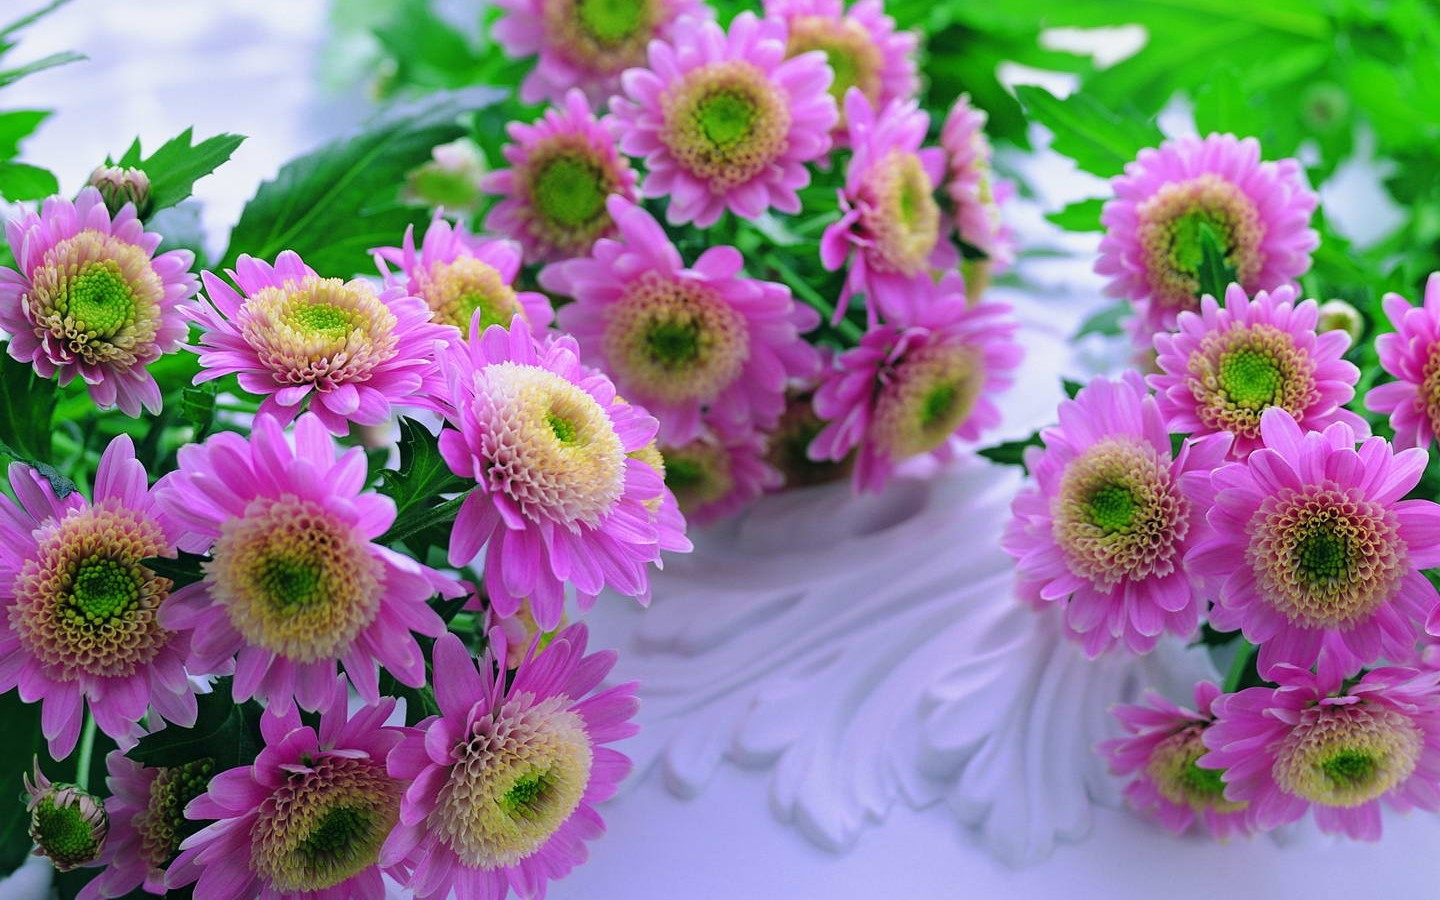 Beautiful flower images hd animaxwallpaper world s top 100 beautiful flowers images wallpaper photos free izmirmasajfo